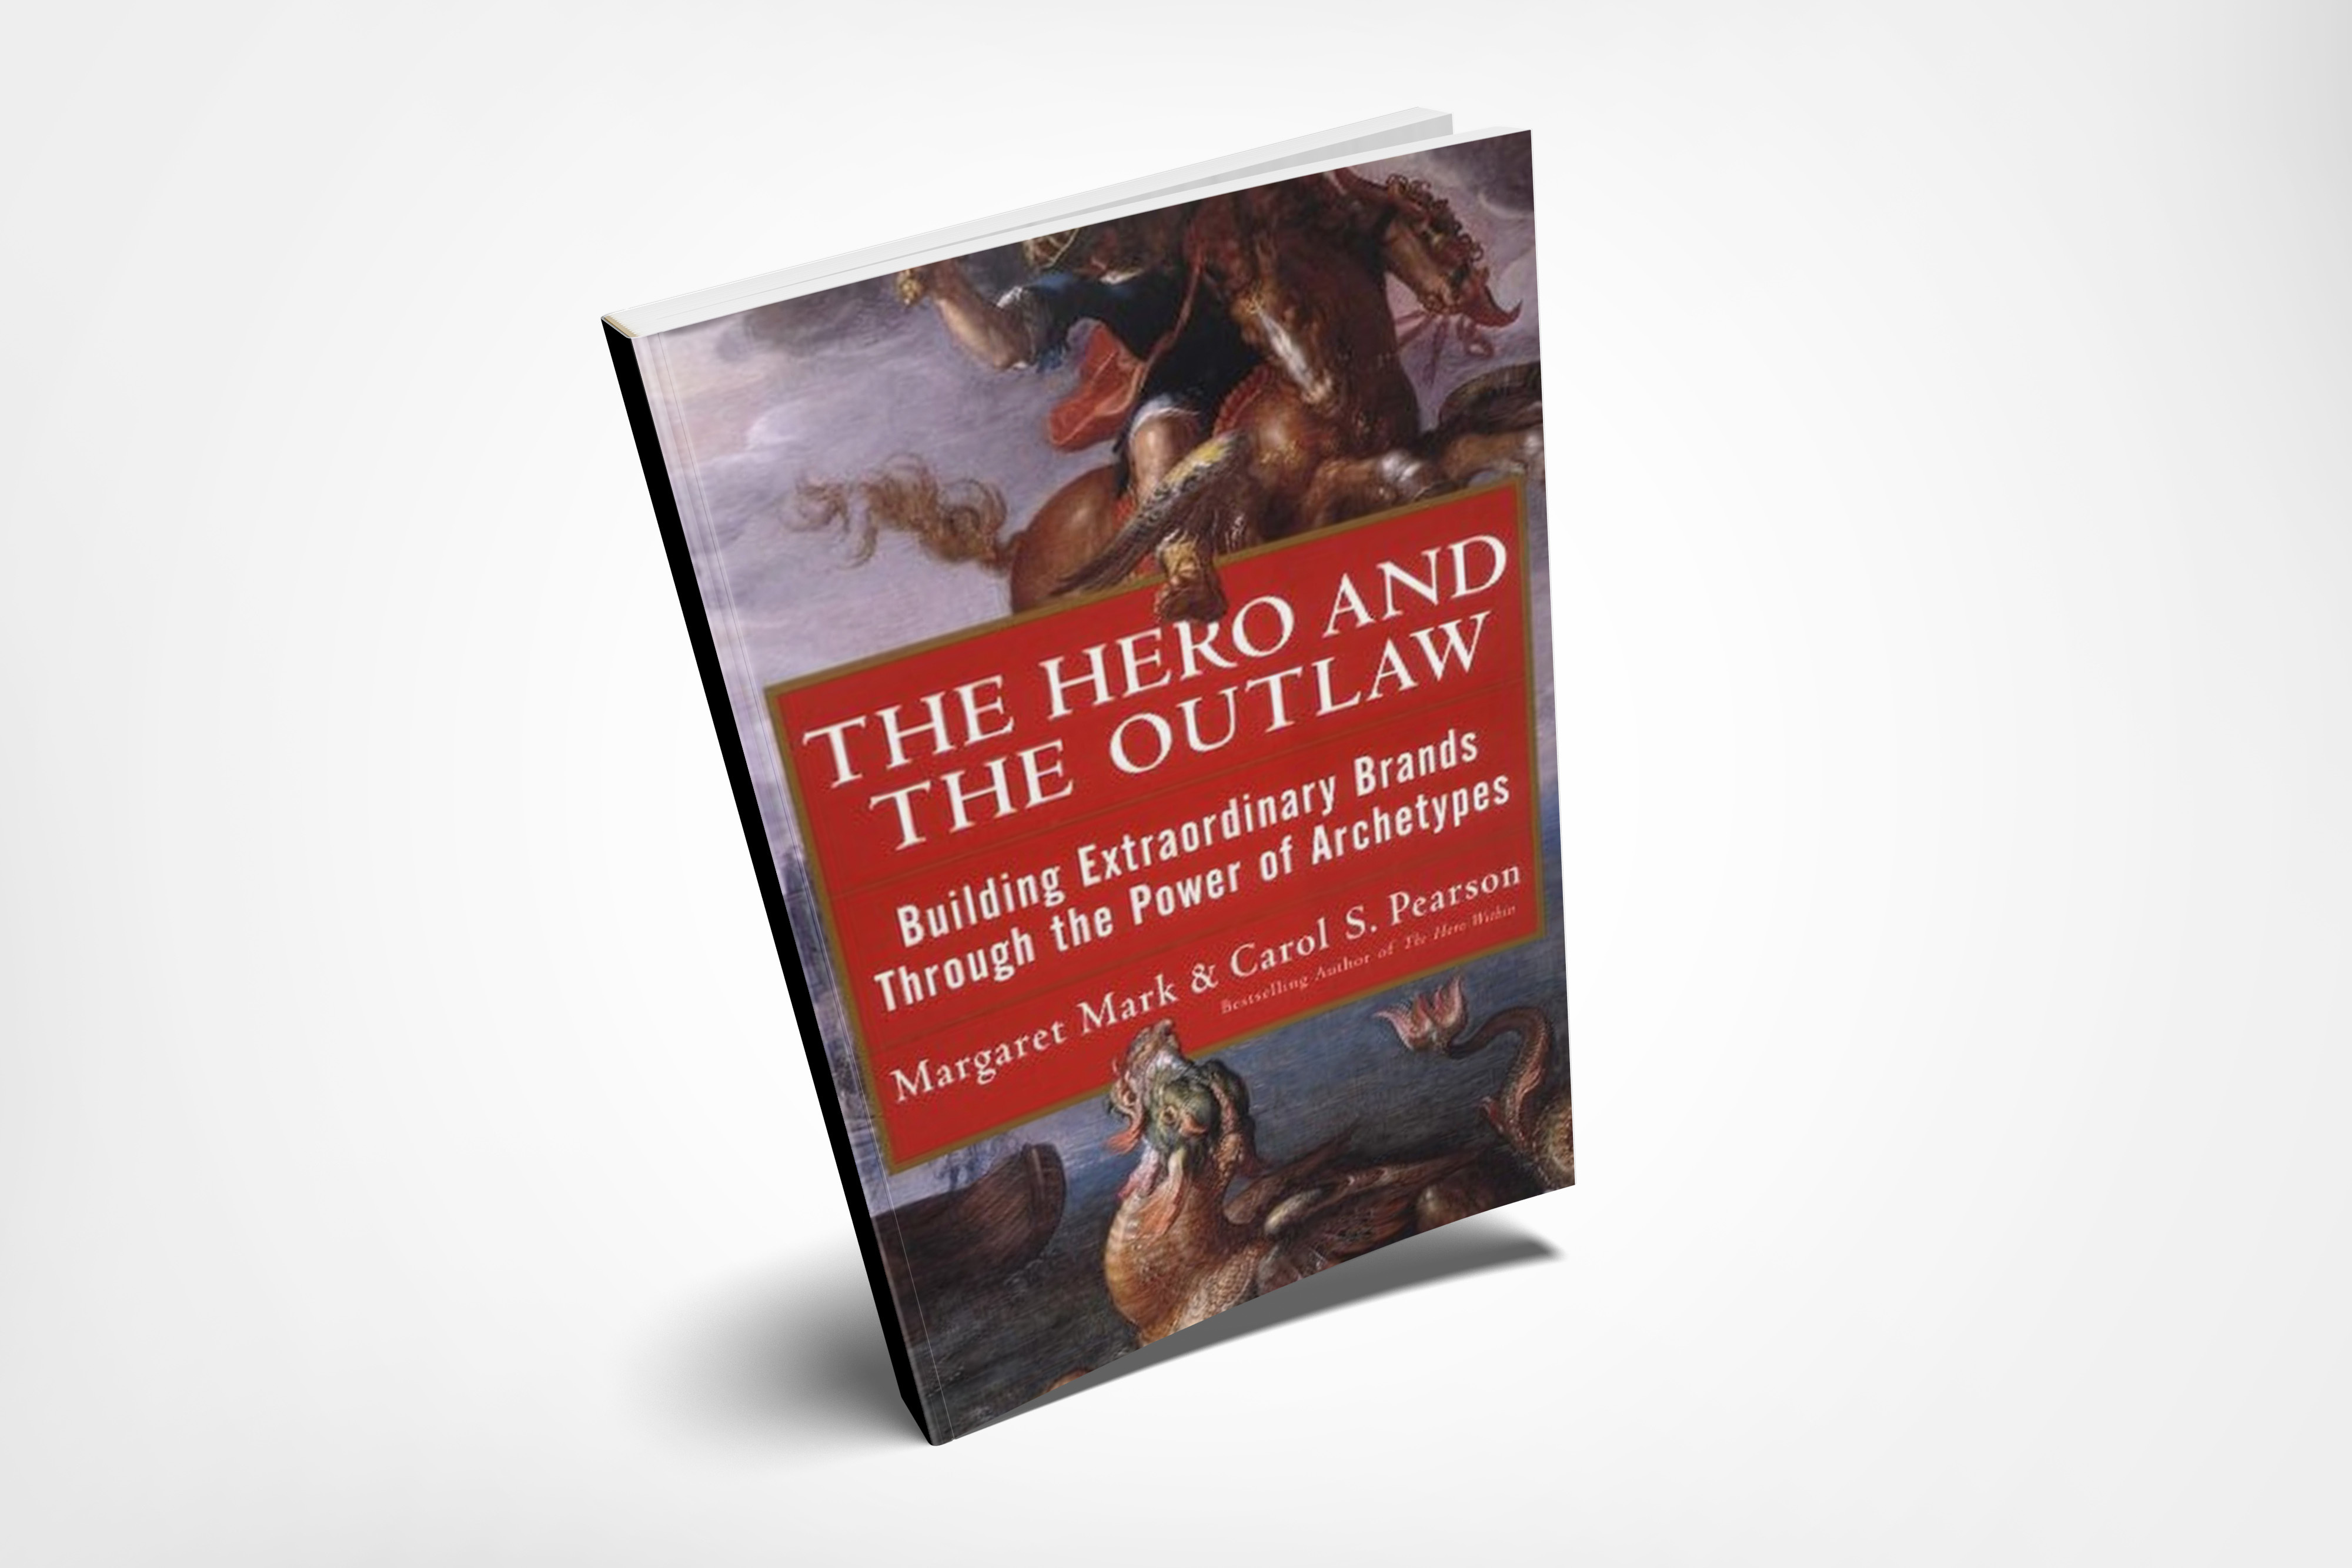 The Herp and the Outlaw book